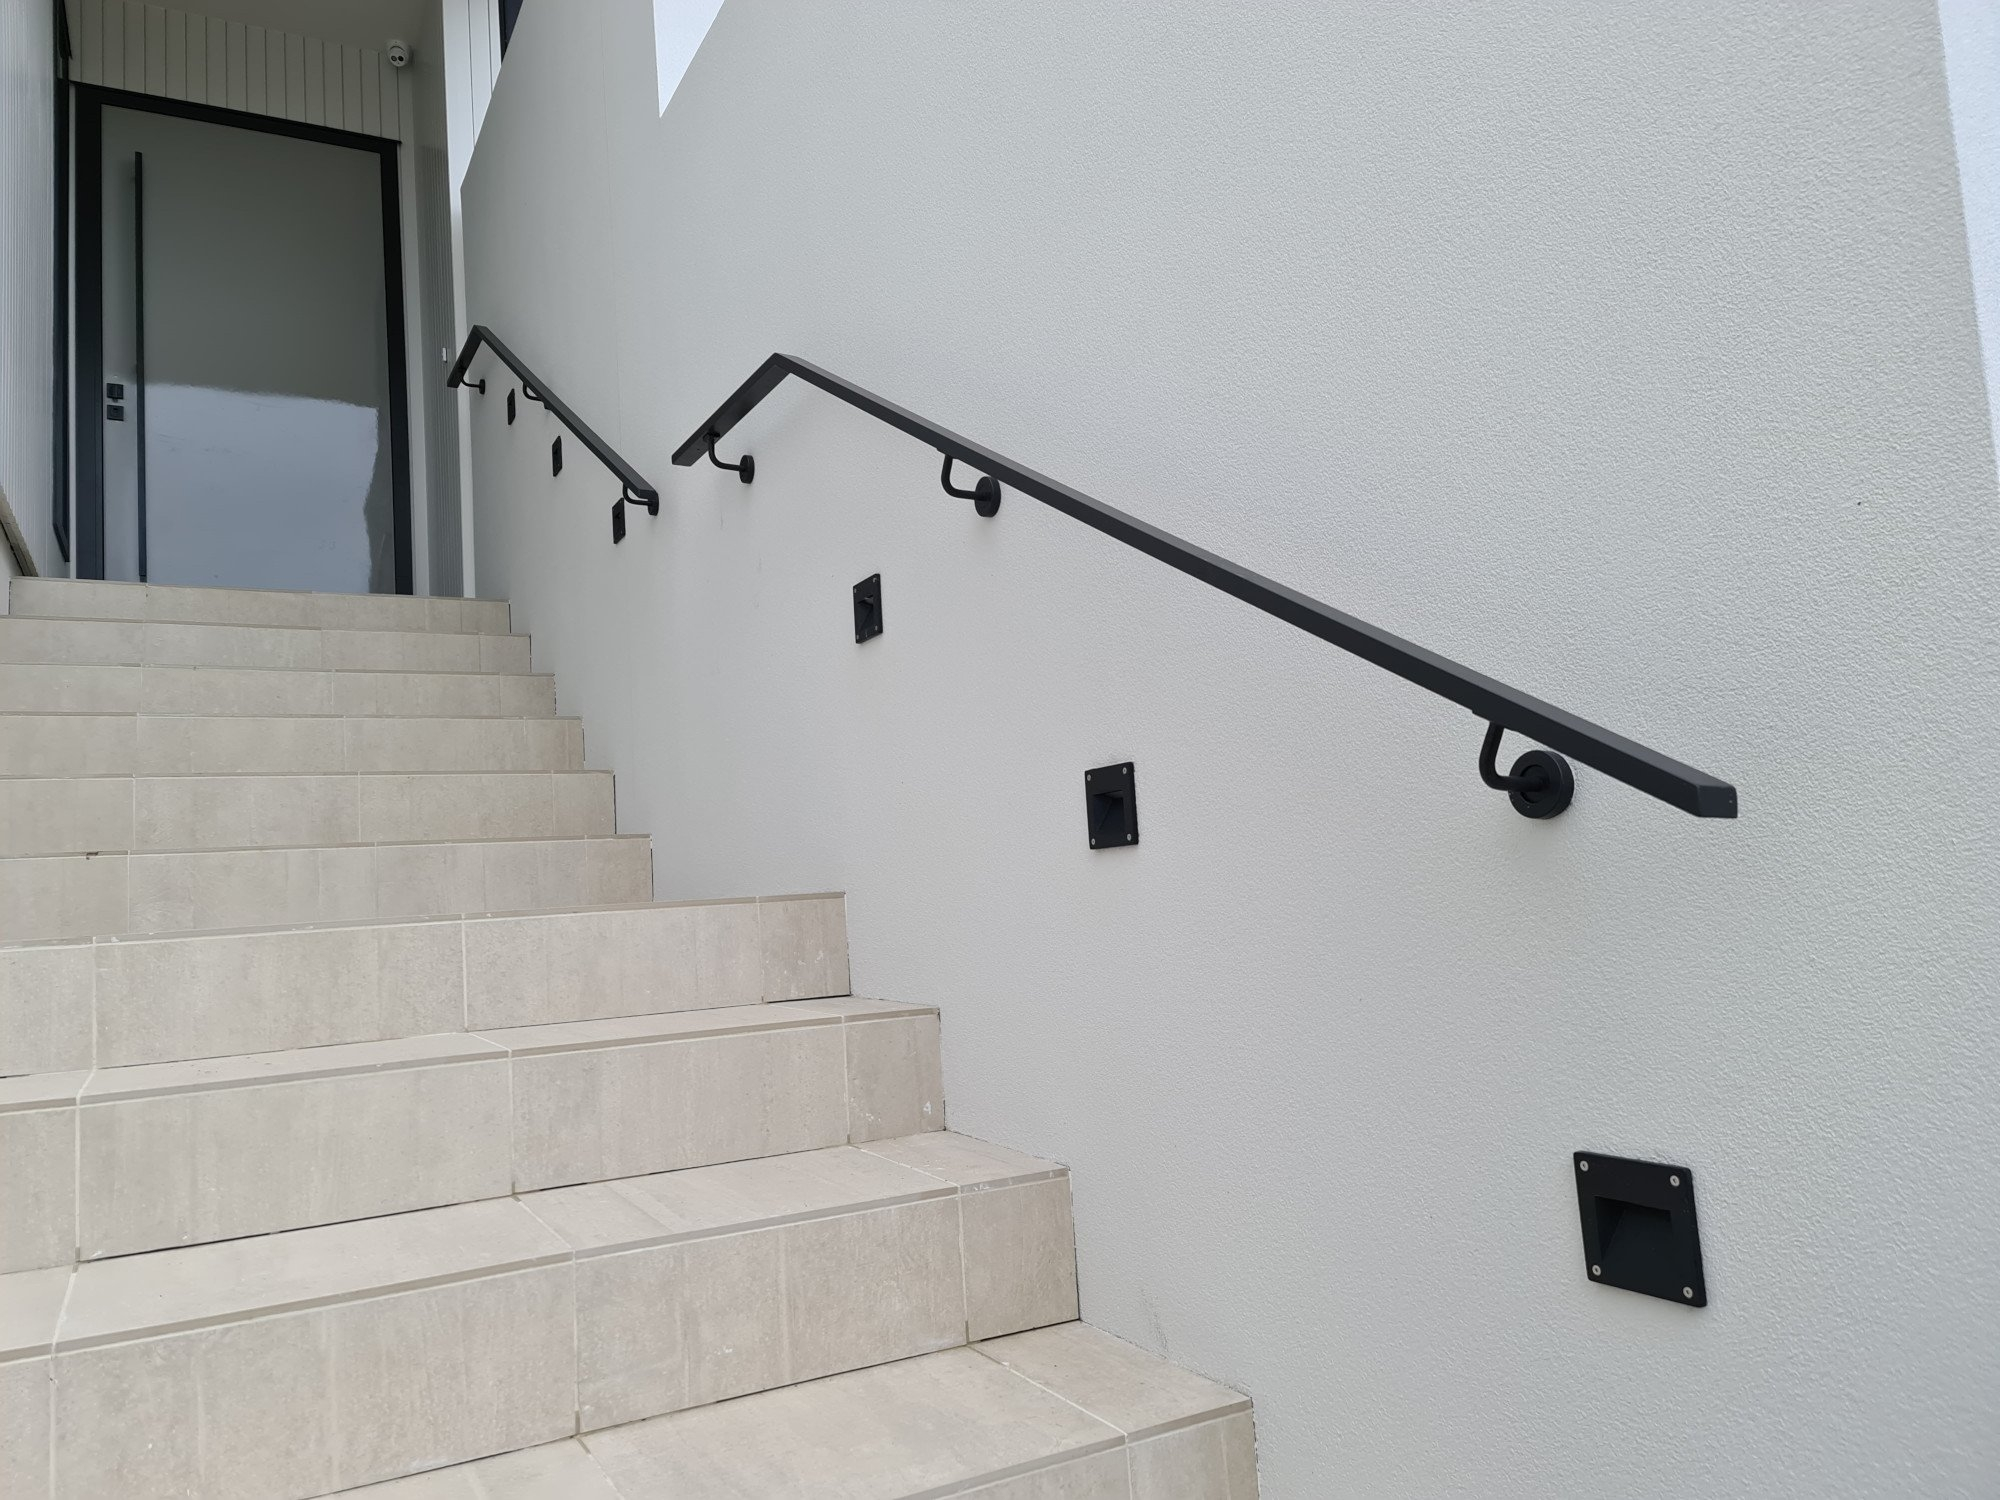 Handrail Gallery Supreme Balustrades   Aluminium Handrails For Stairs   Outdoor   Plastic   Movable   Aluminum Oval Shaped   Vertical 6Mm Ss Rope Glass